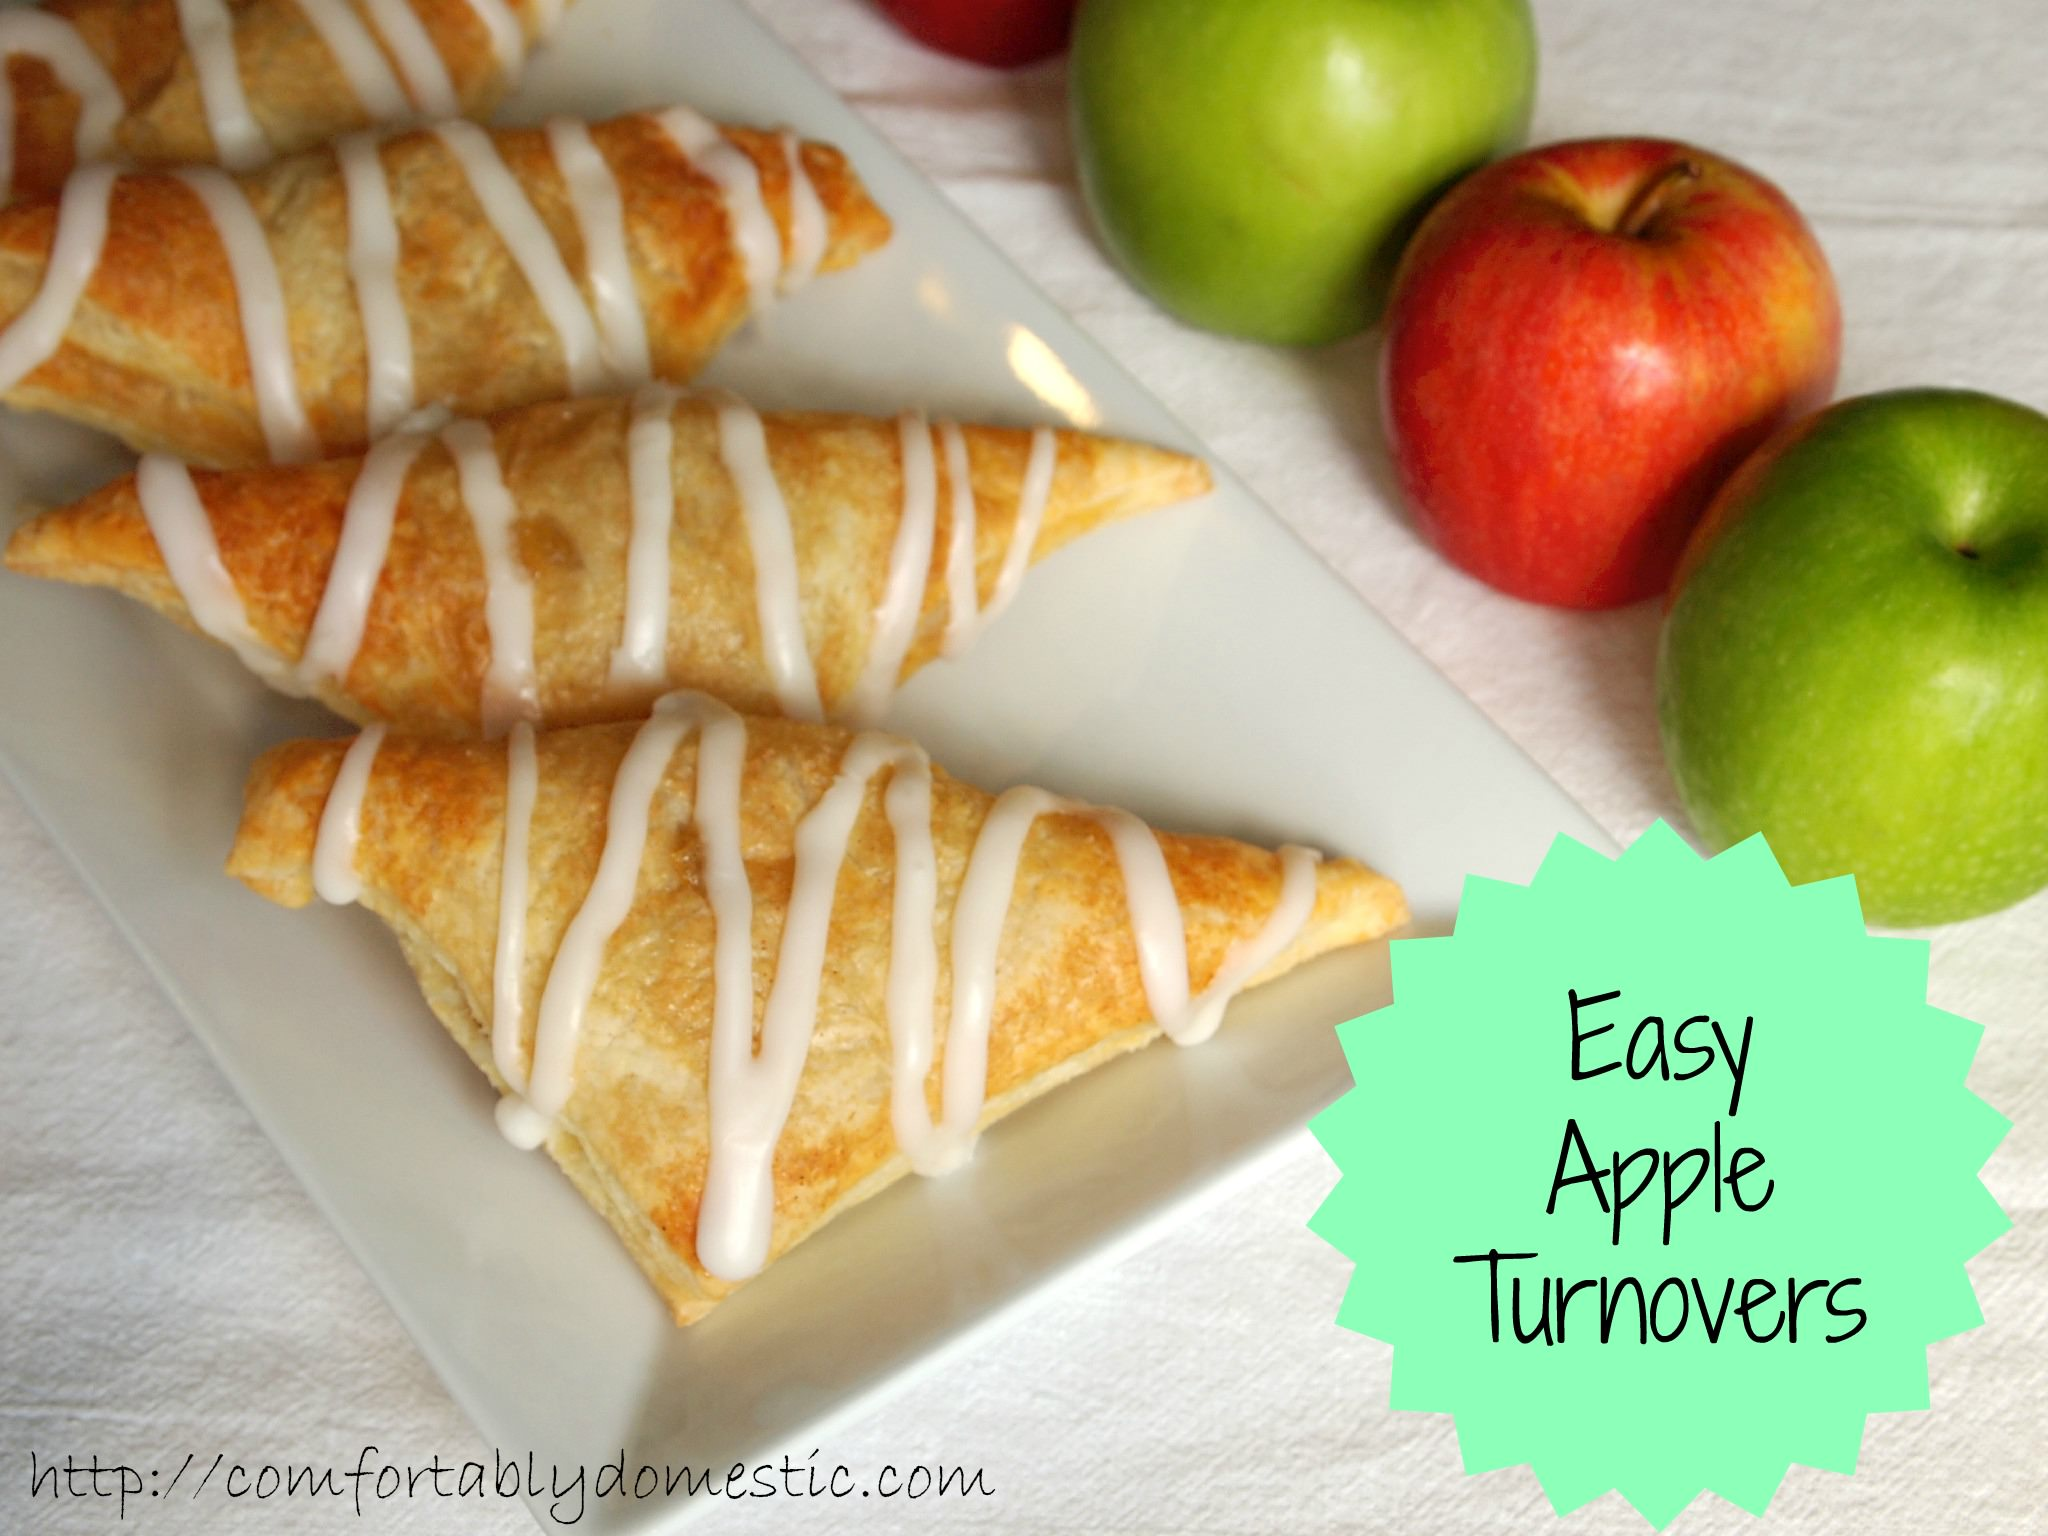 Apple turnovers are a sweet treat in the morning with a cup of coffee, as an afternoon snack, or for a light dessert. The best part is that they're incredibly easy to make! | ComfortablyDomestic.com